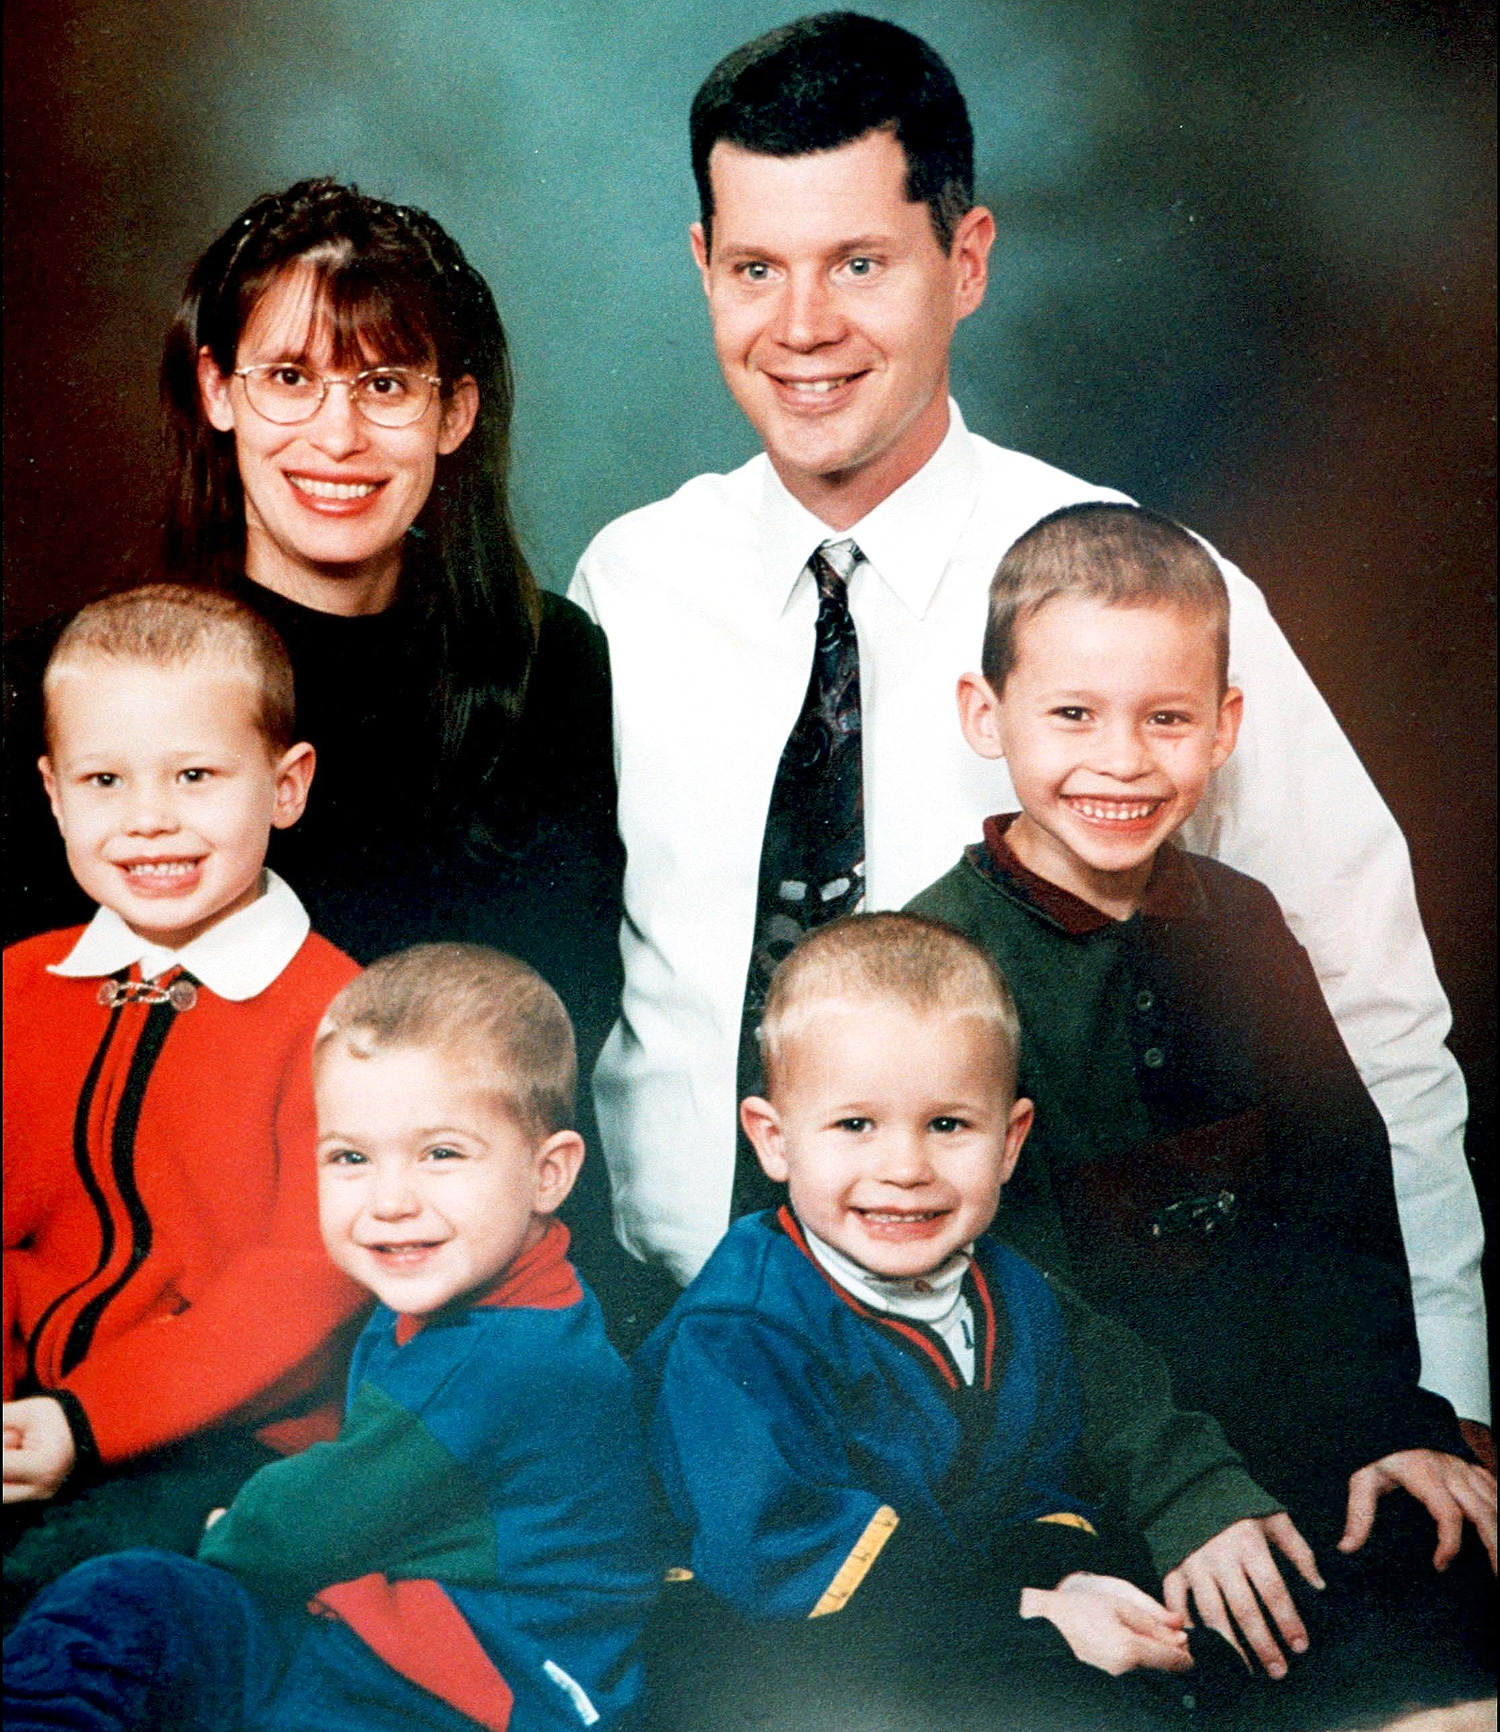 Andrea Yates Drowns Her 5 Children